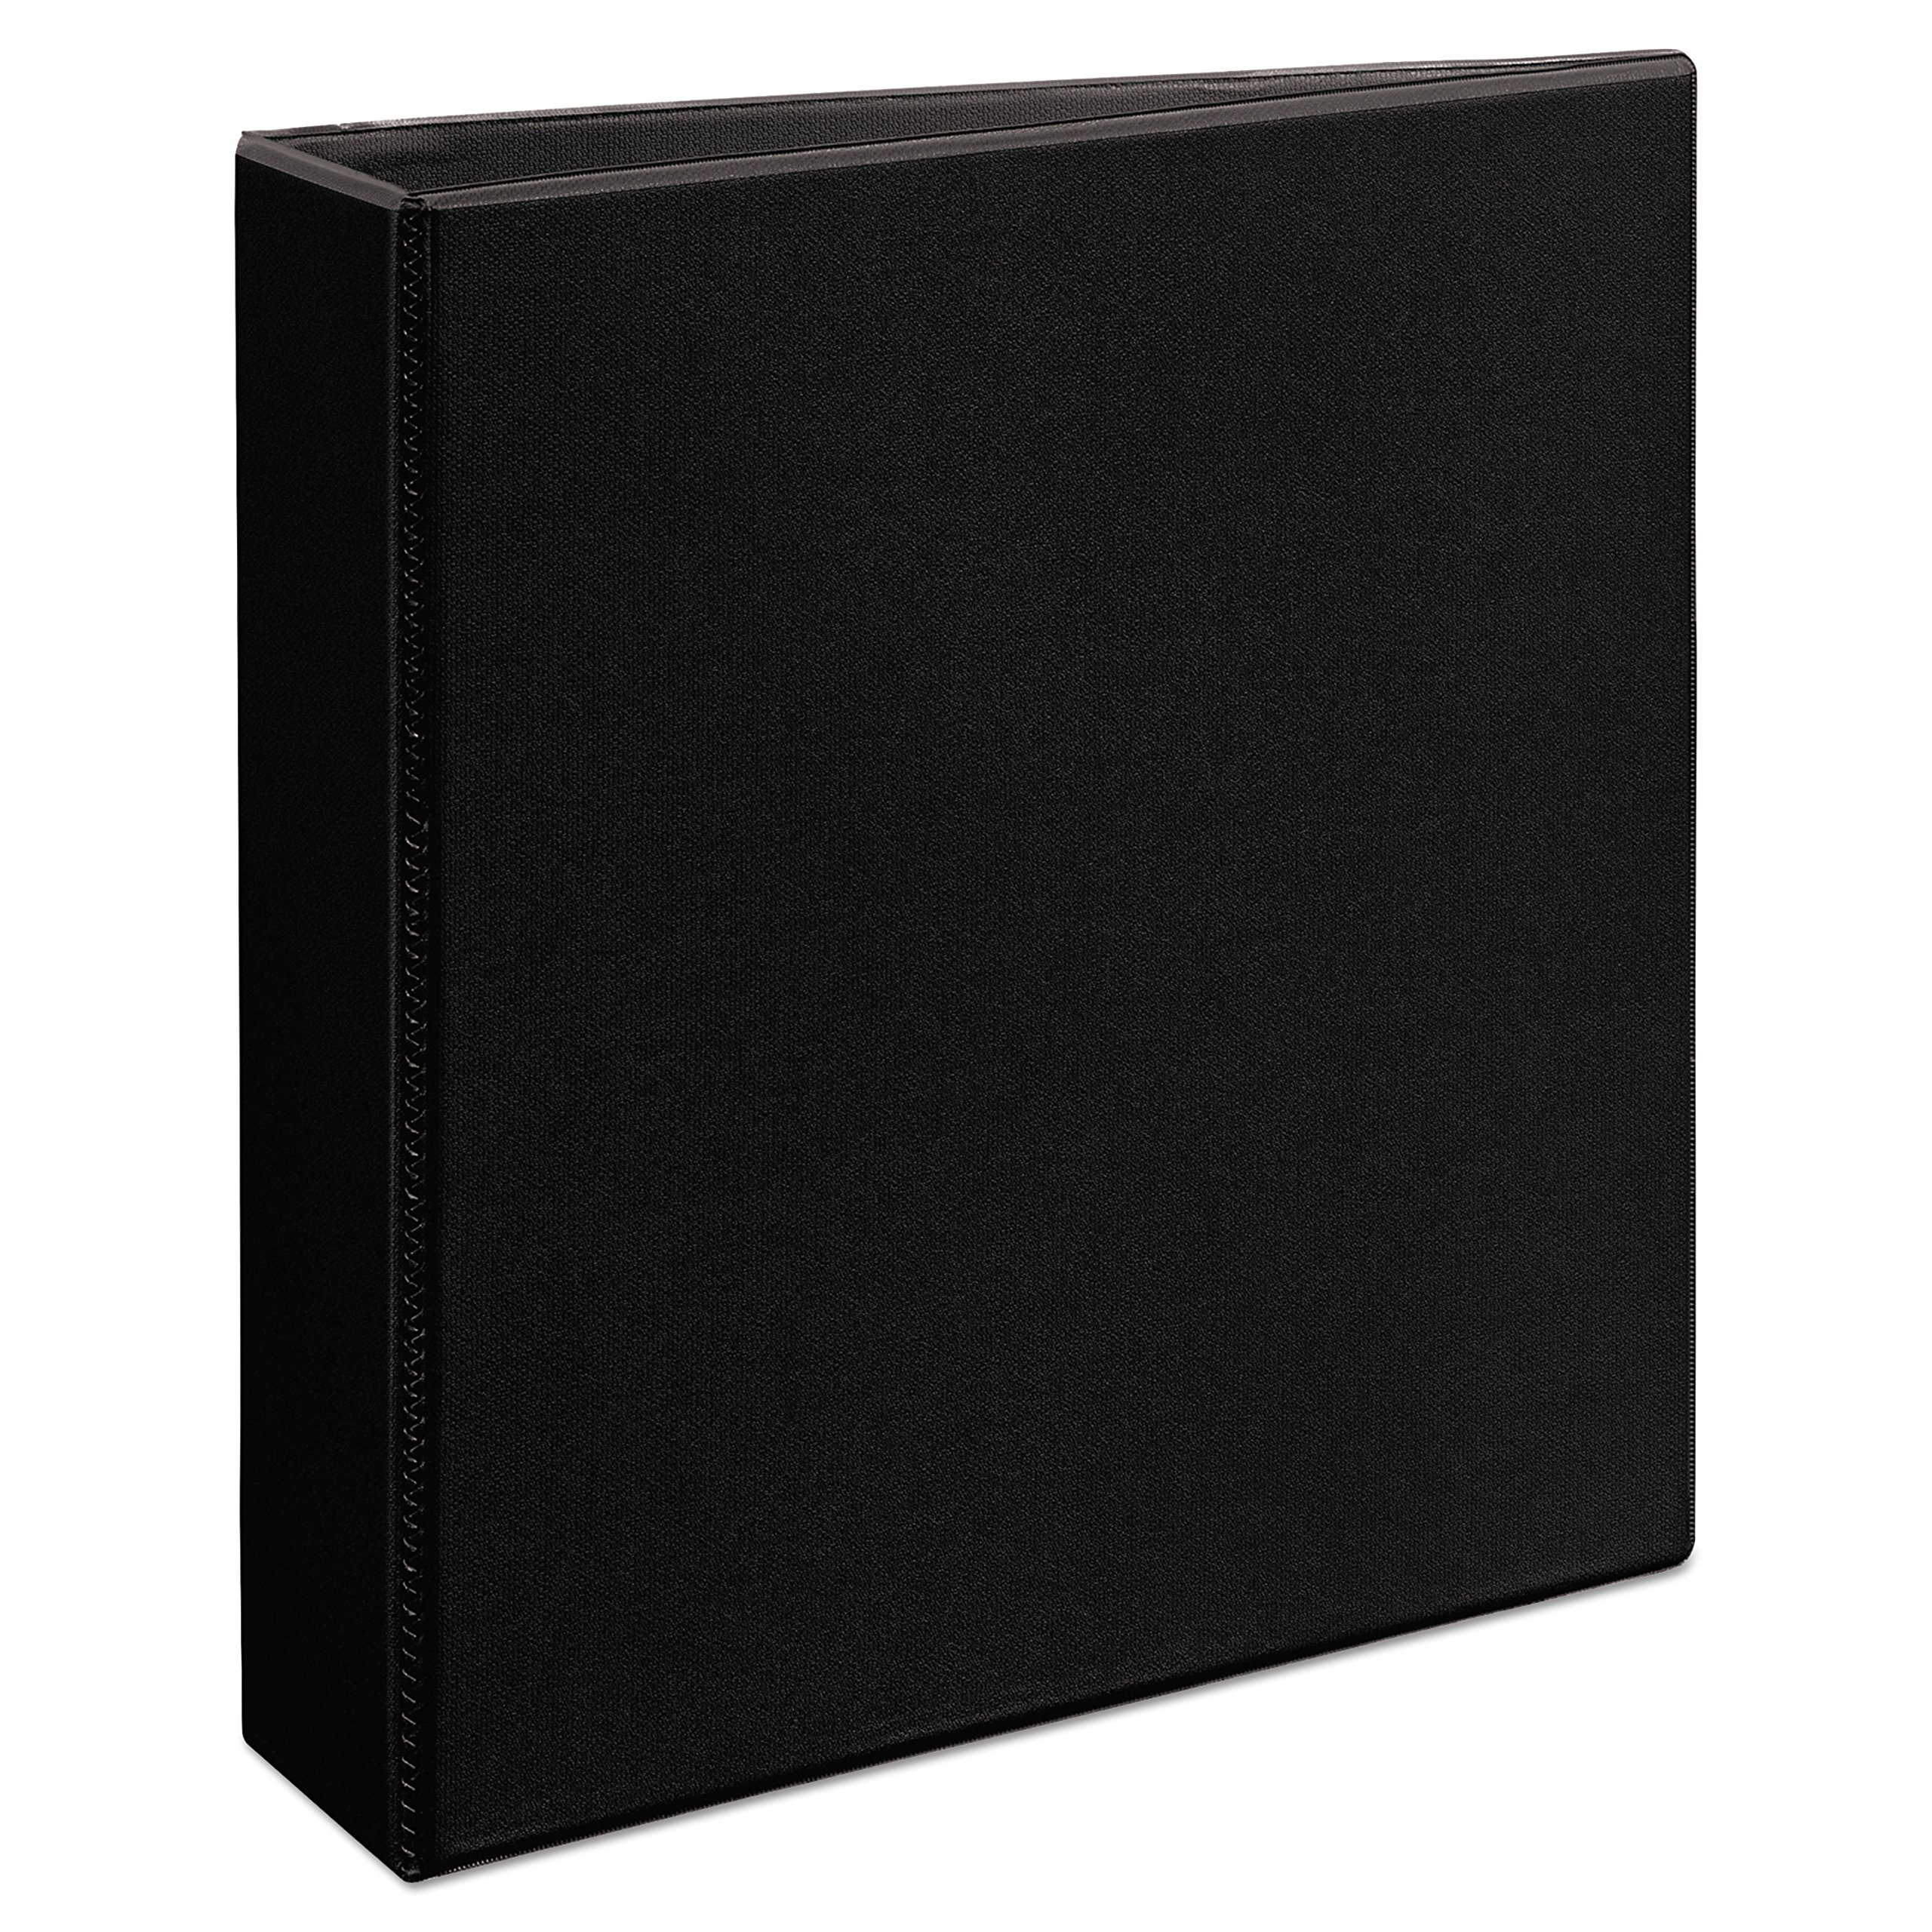 Avery Heavy-Duty View Binder, 2'' One-Touch Slant Rings, 500-Sheet Capacity, DuraHinge, Black (79692)